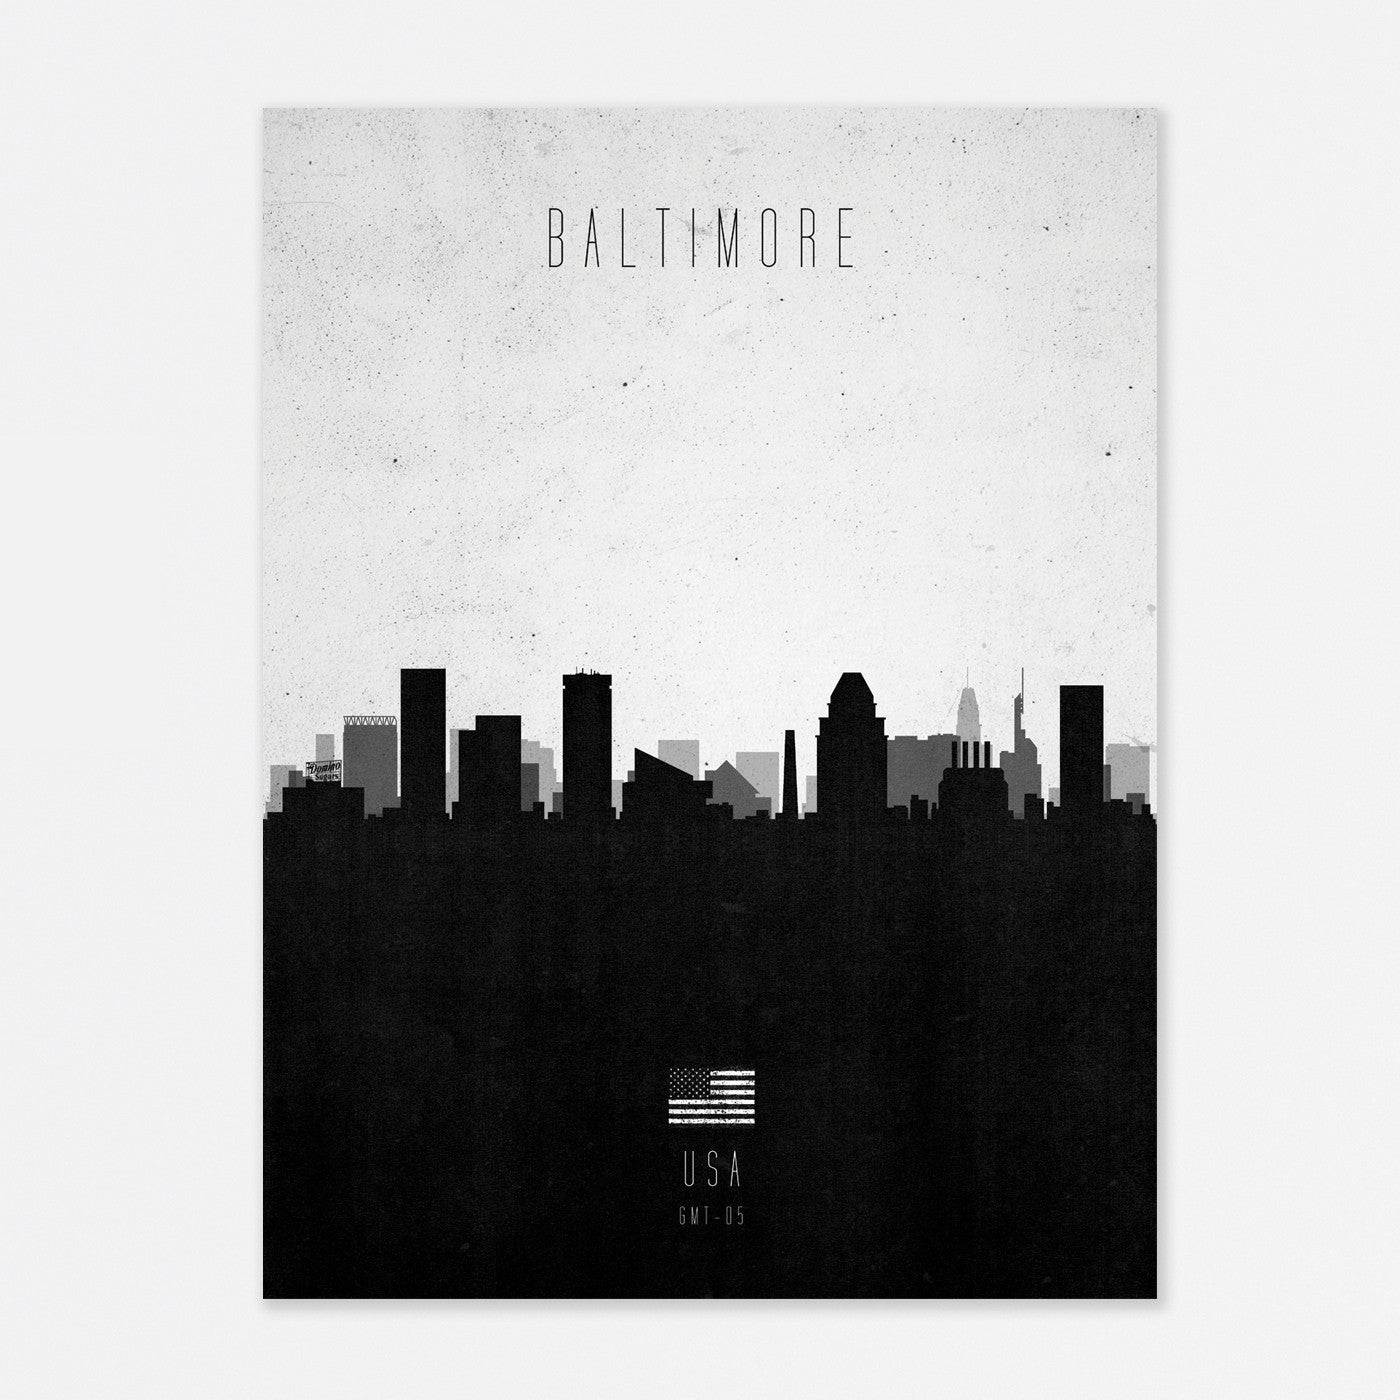 Baltimore: GMT -05